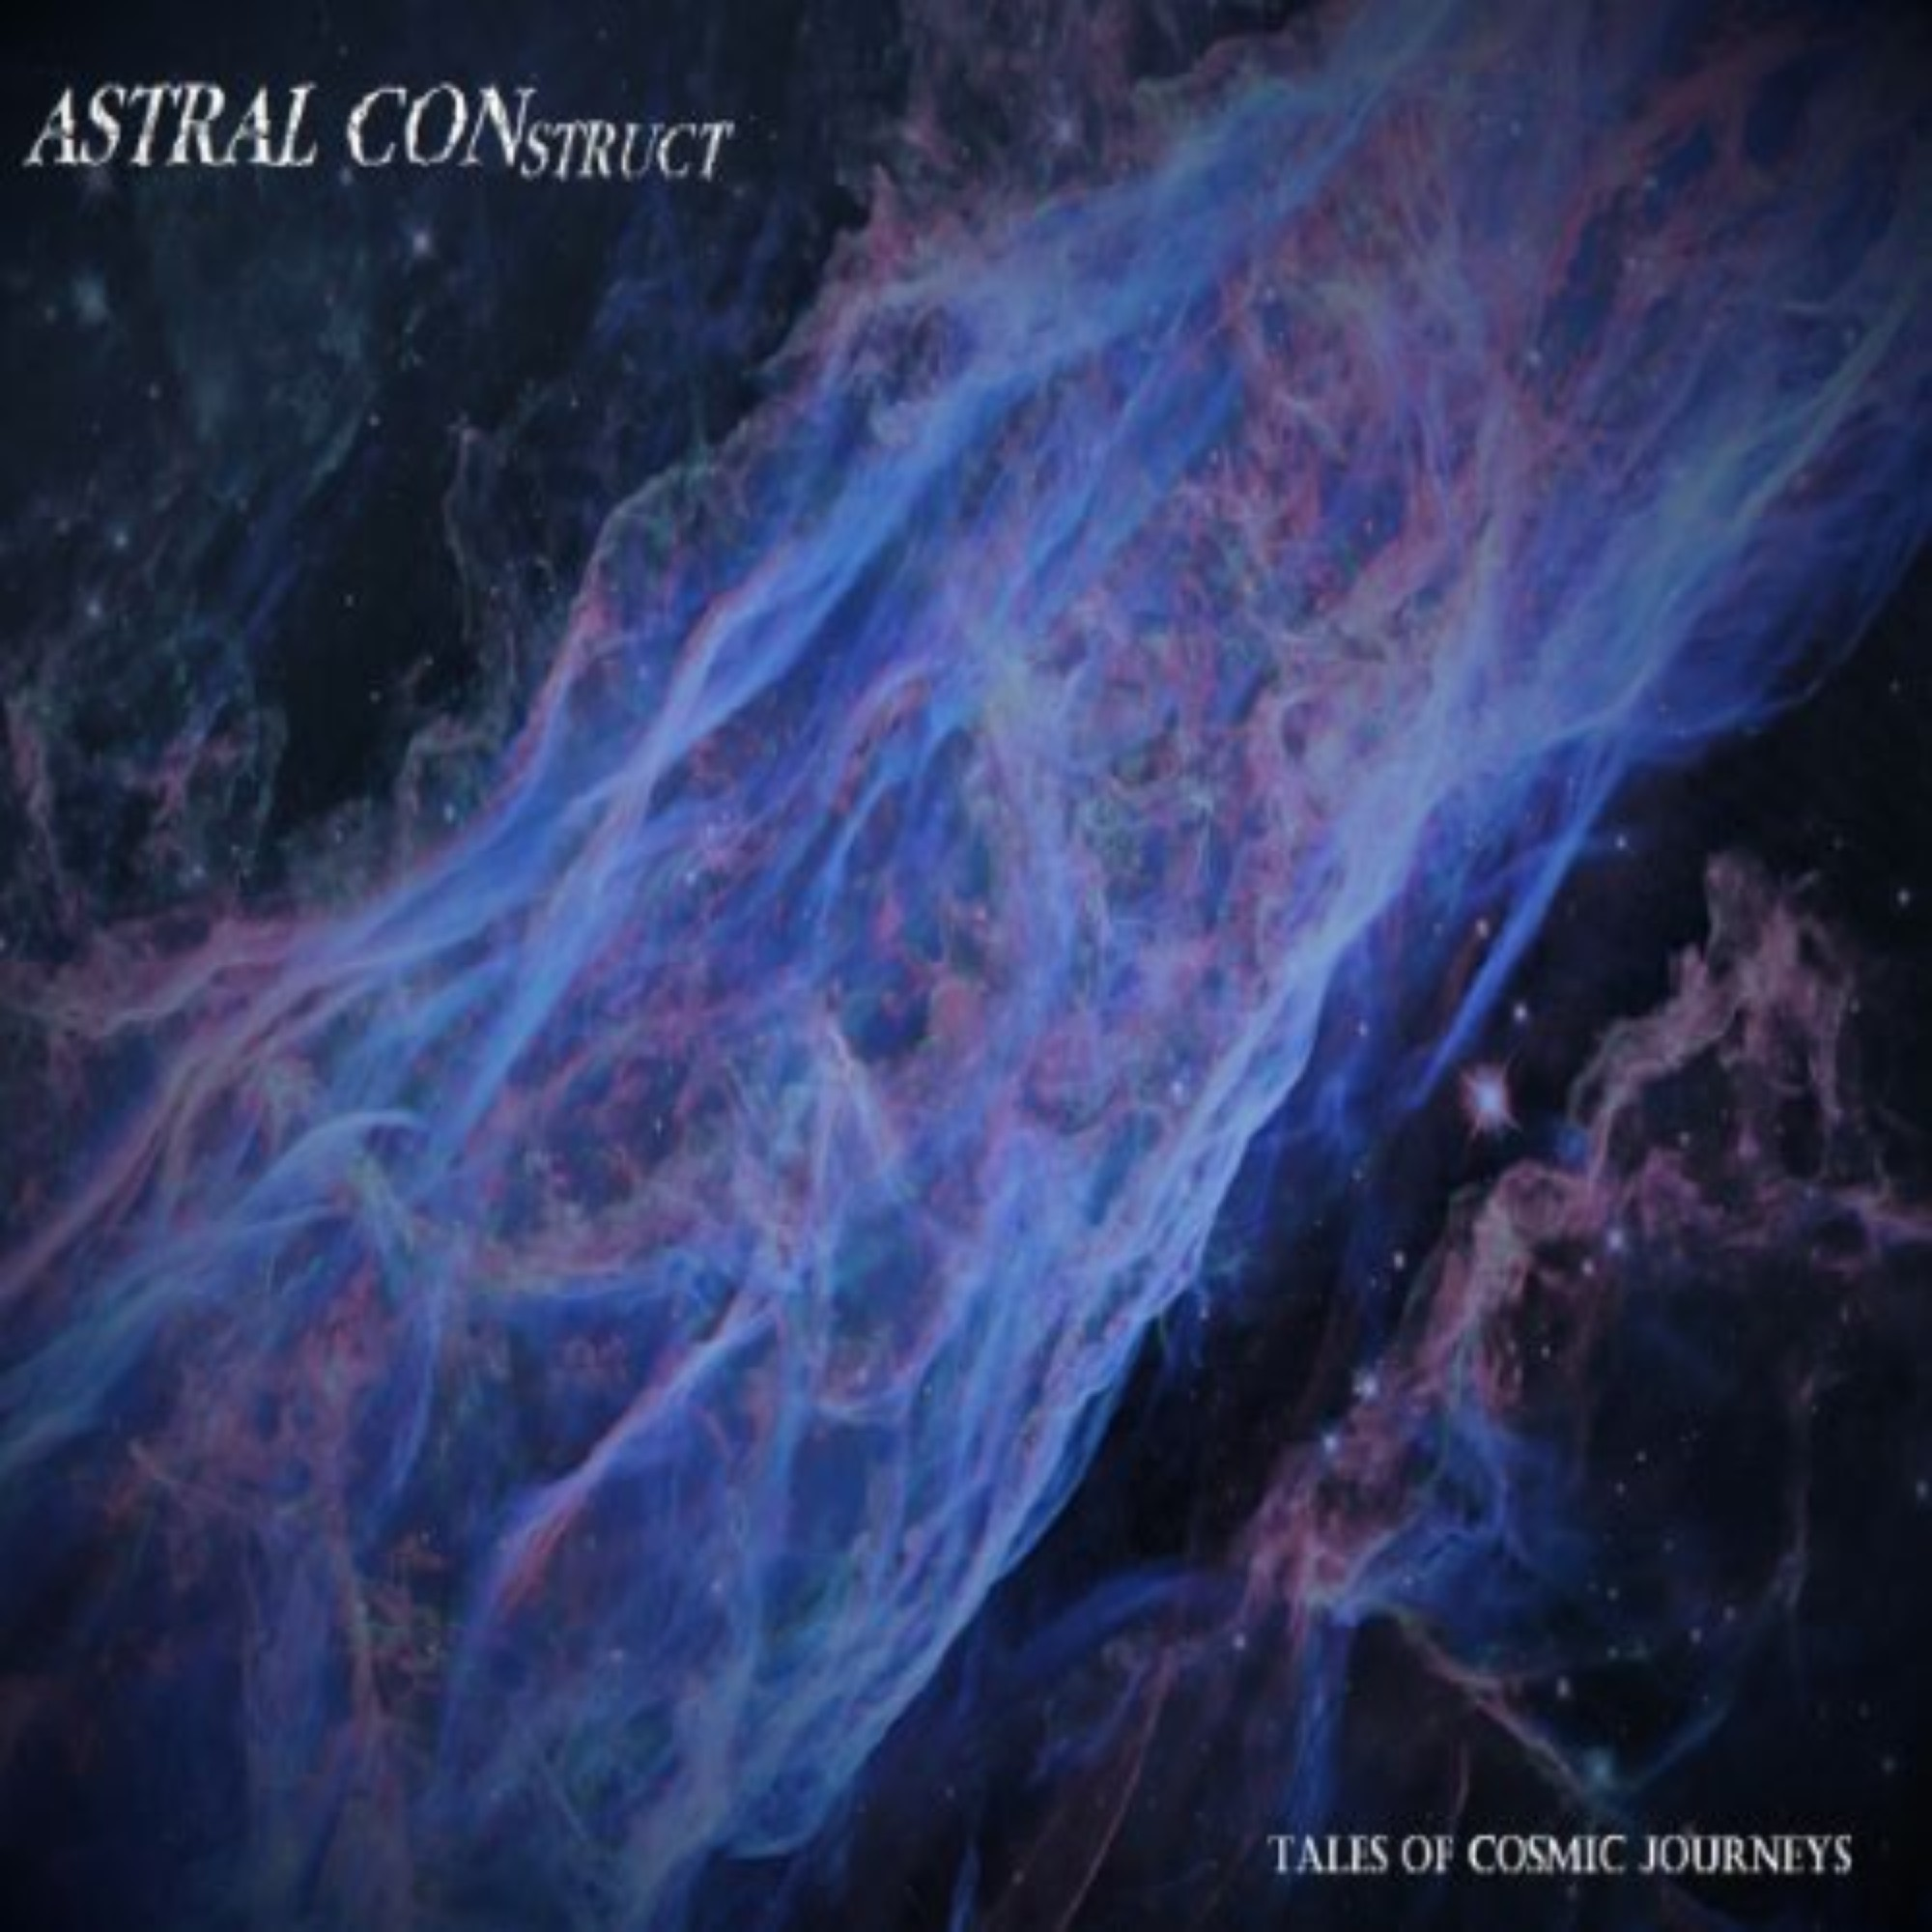 ASTRAL CONstruct Tales of Cosmic Journeys